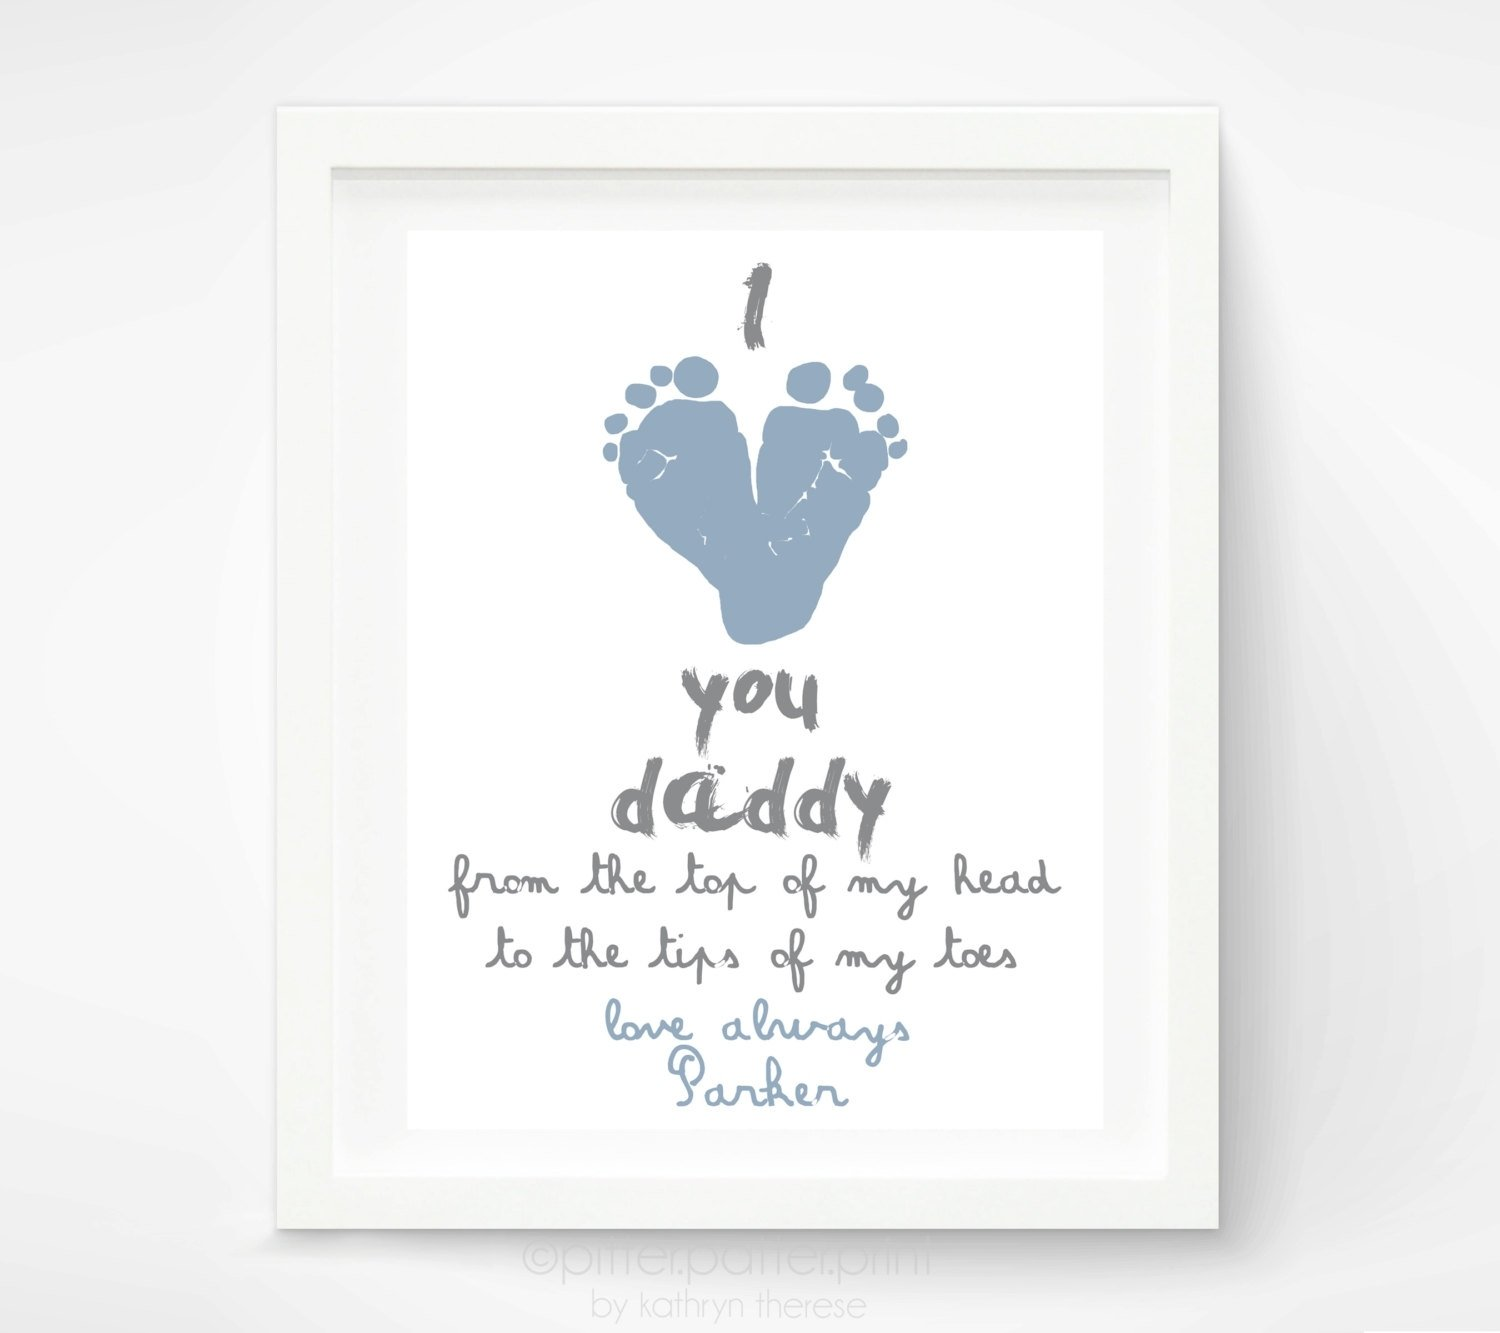 10 Attractive Christmas Ideas For Dad From Daughter personalized fathers day gift for new dad i love you daddy baby 2020